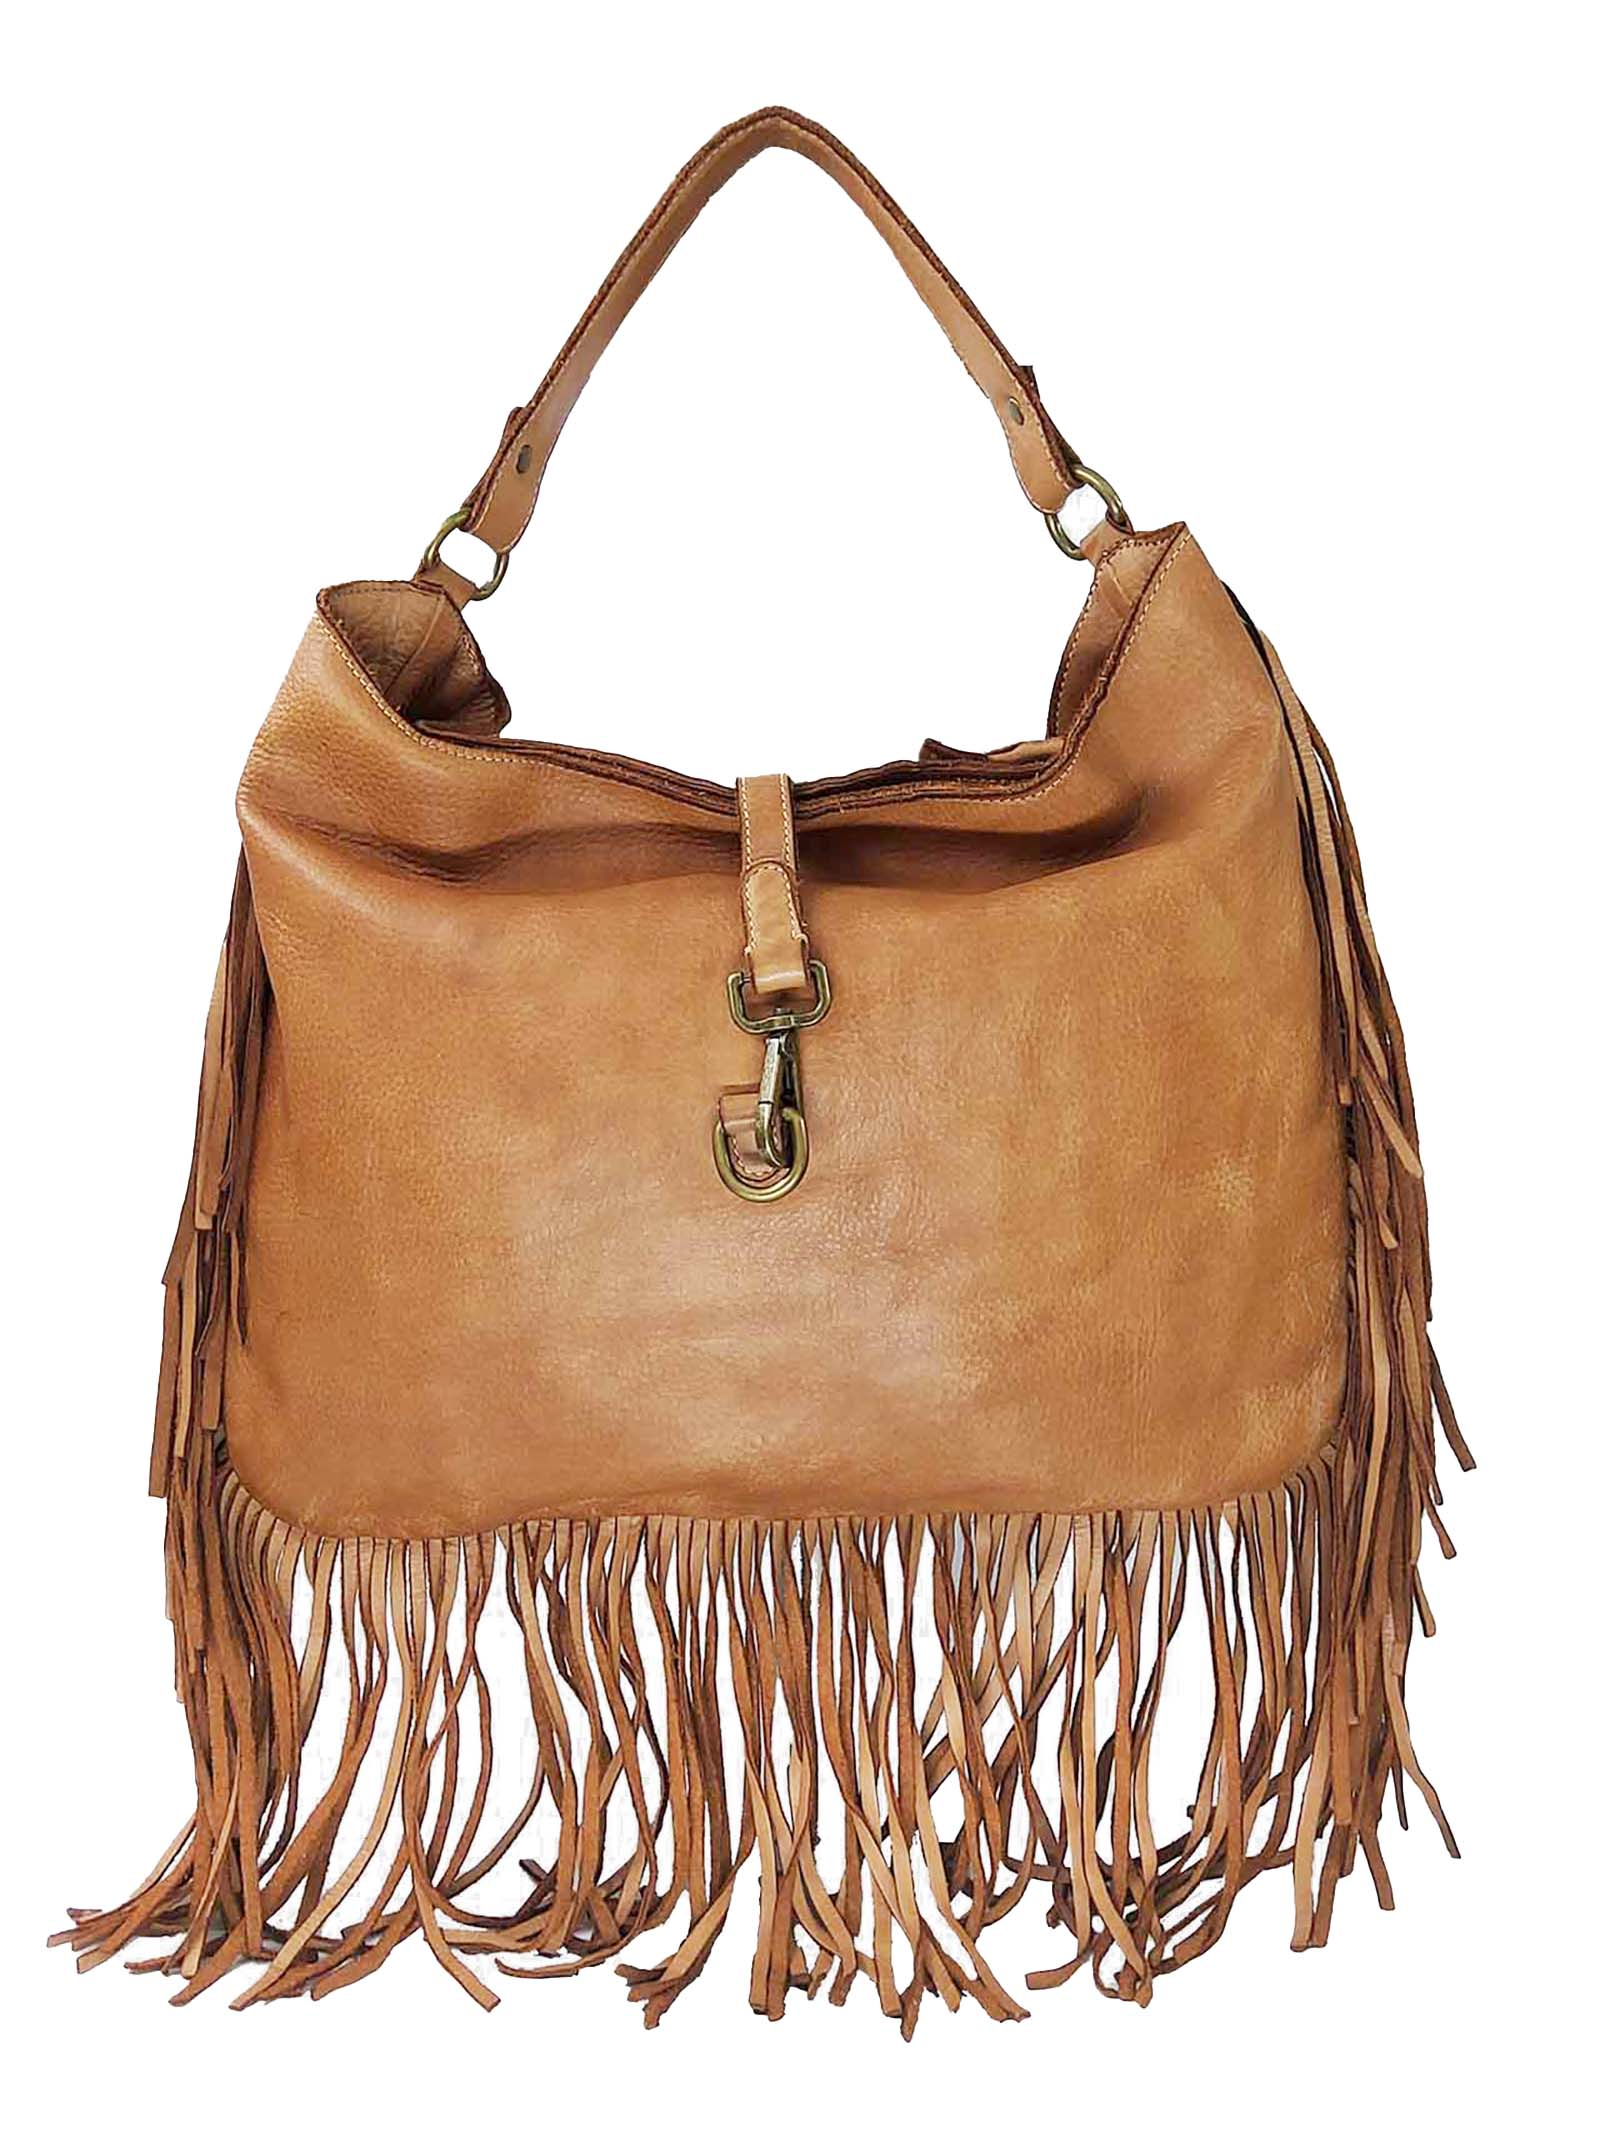 Shoulder Bags in Leather Leather Shopping with Fringes and Removable Shoulder Strap Spatarella | Bags and backpacks | PE0207014